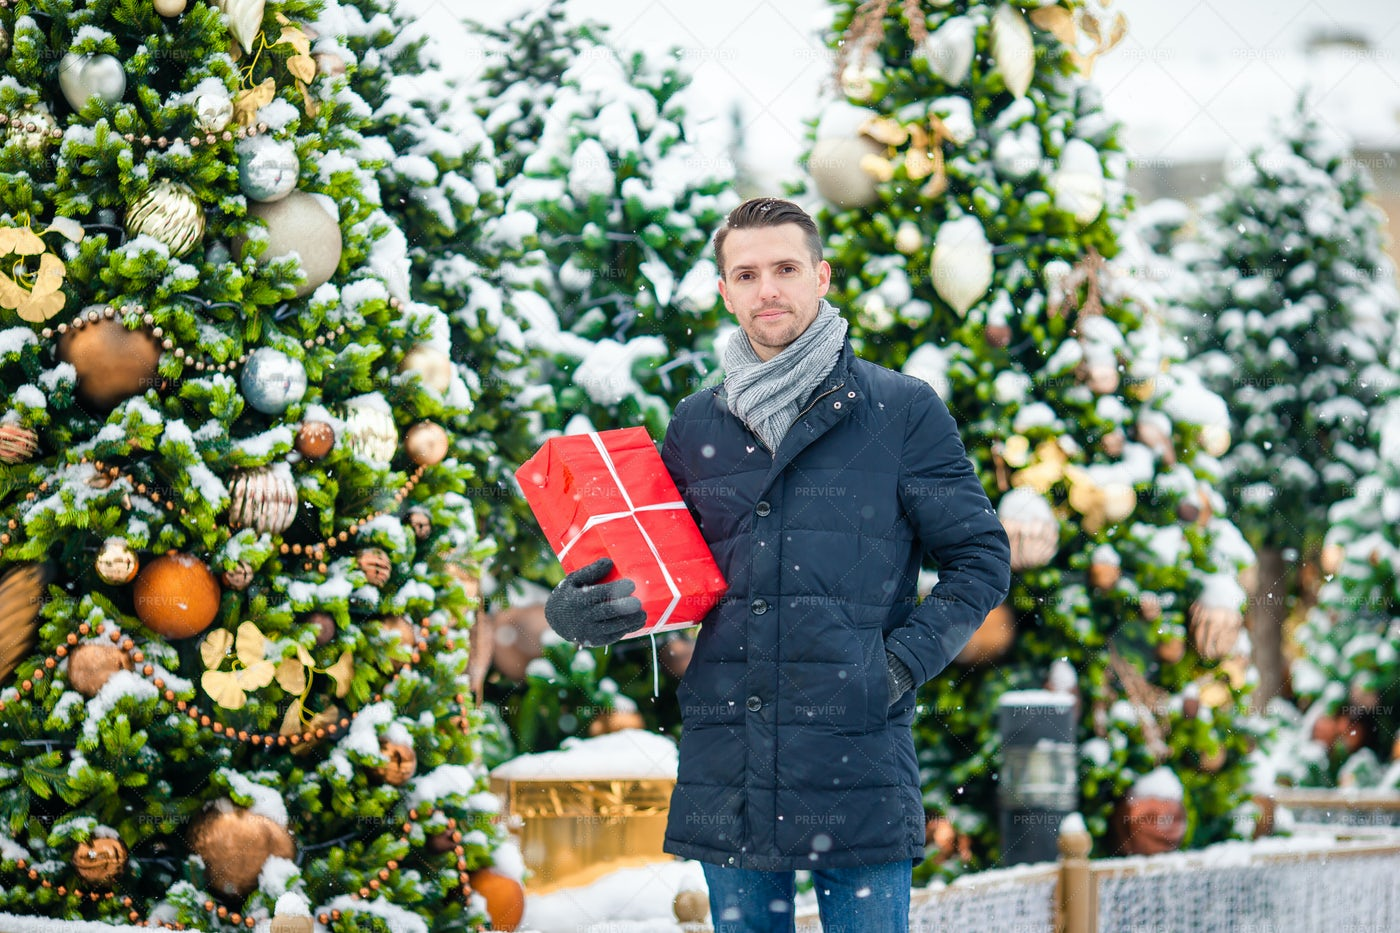 Man With Special Christmas Gift: Stock Photos